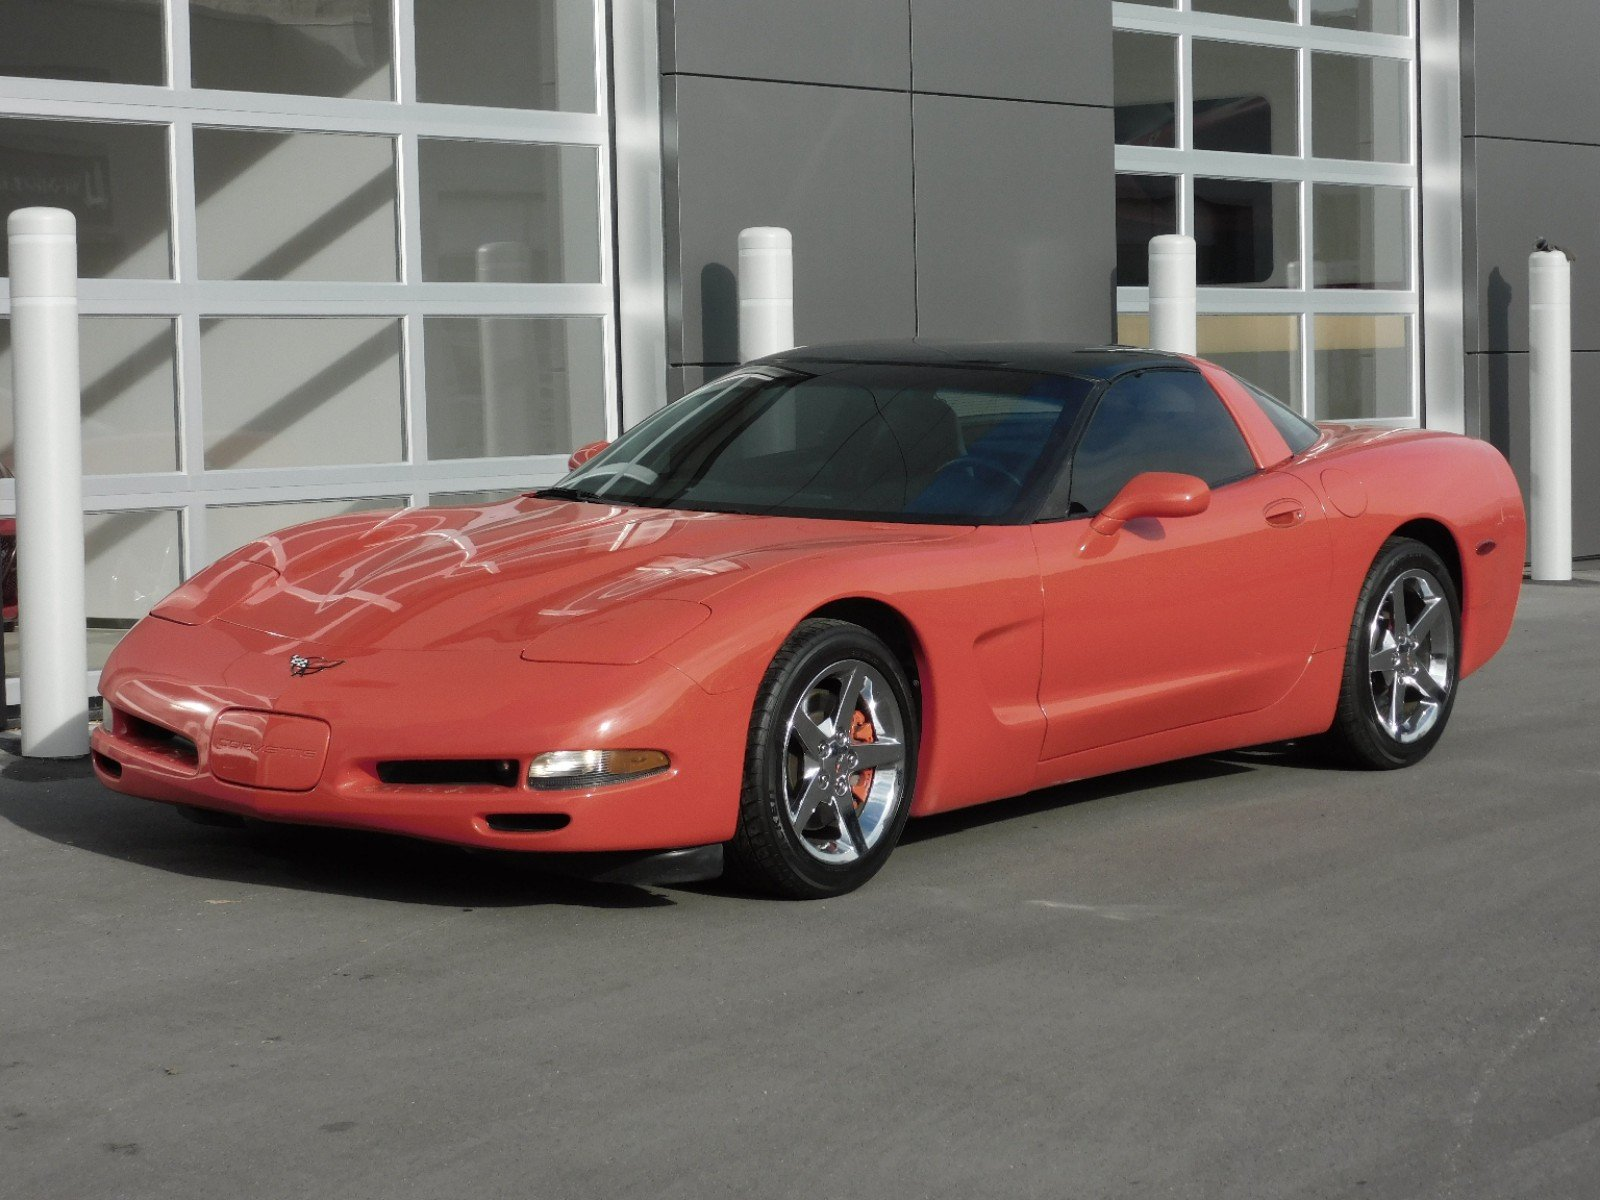 Pre-Owned 2001 Chevrolet Corvette 2DR CPE